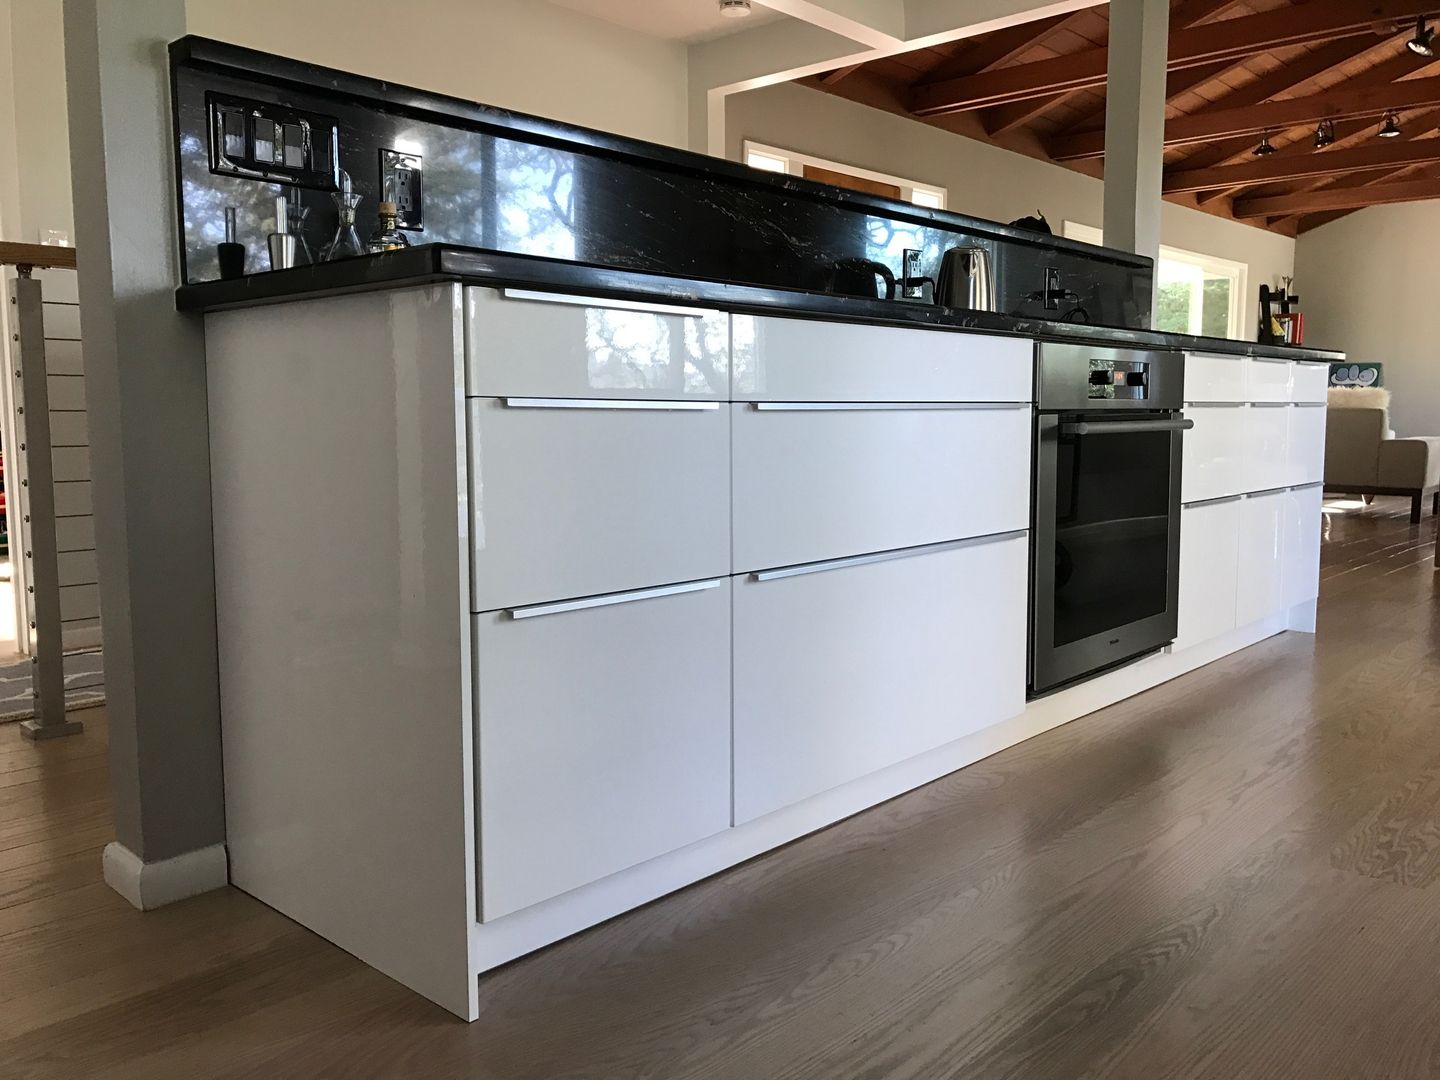 Finished and completed IKEA kitchen Sektion Cabinets Ringhult White ...